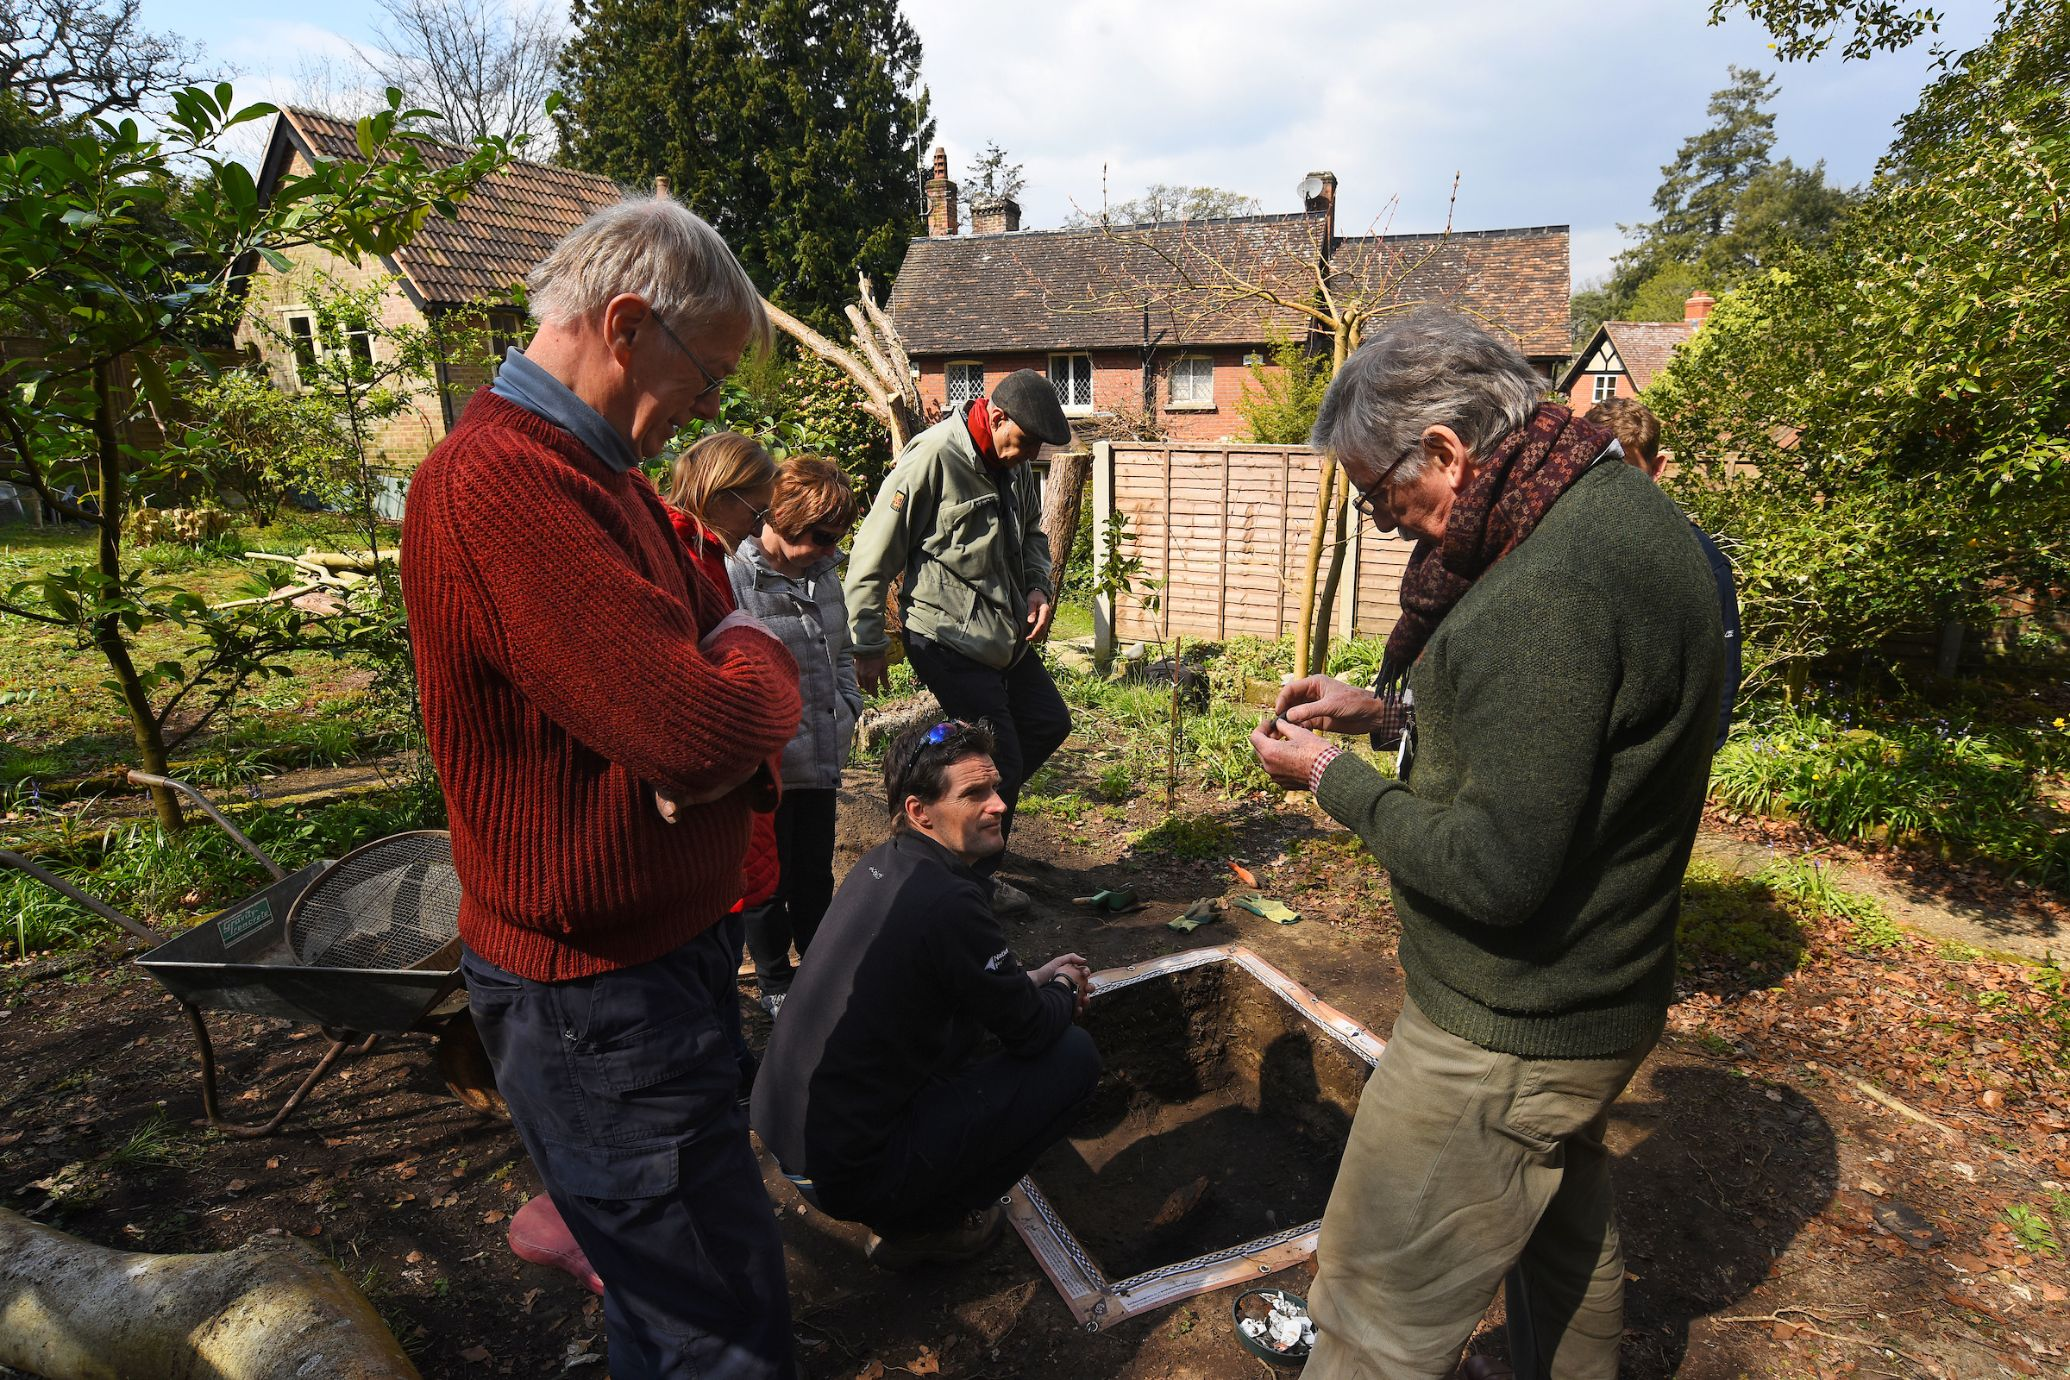 Dig Burley test pit with experts